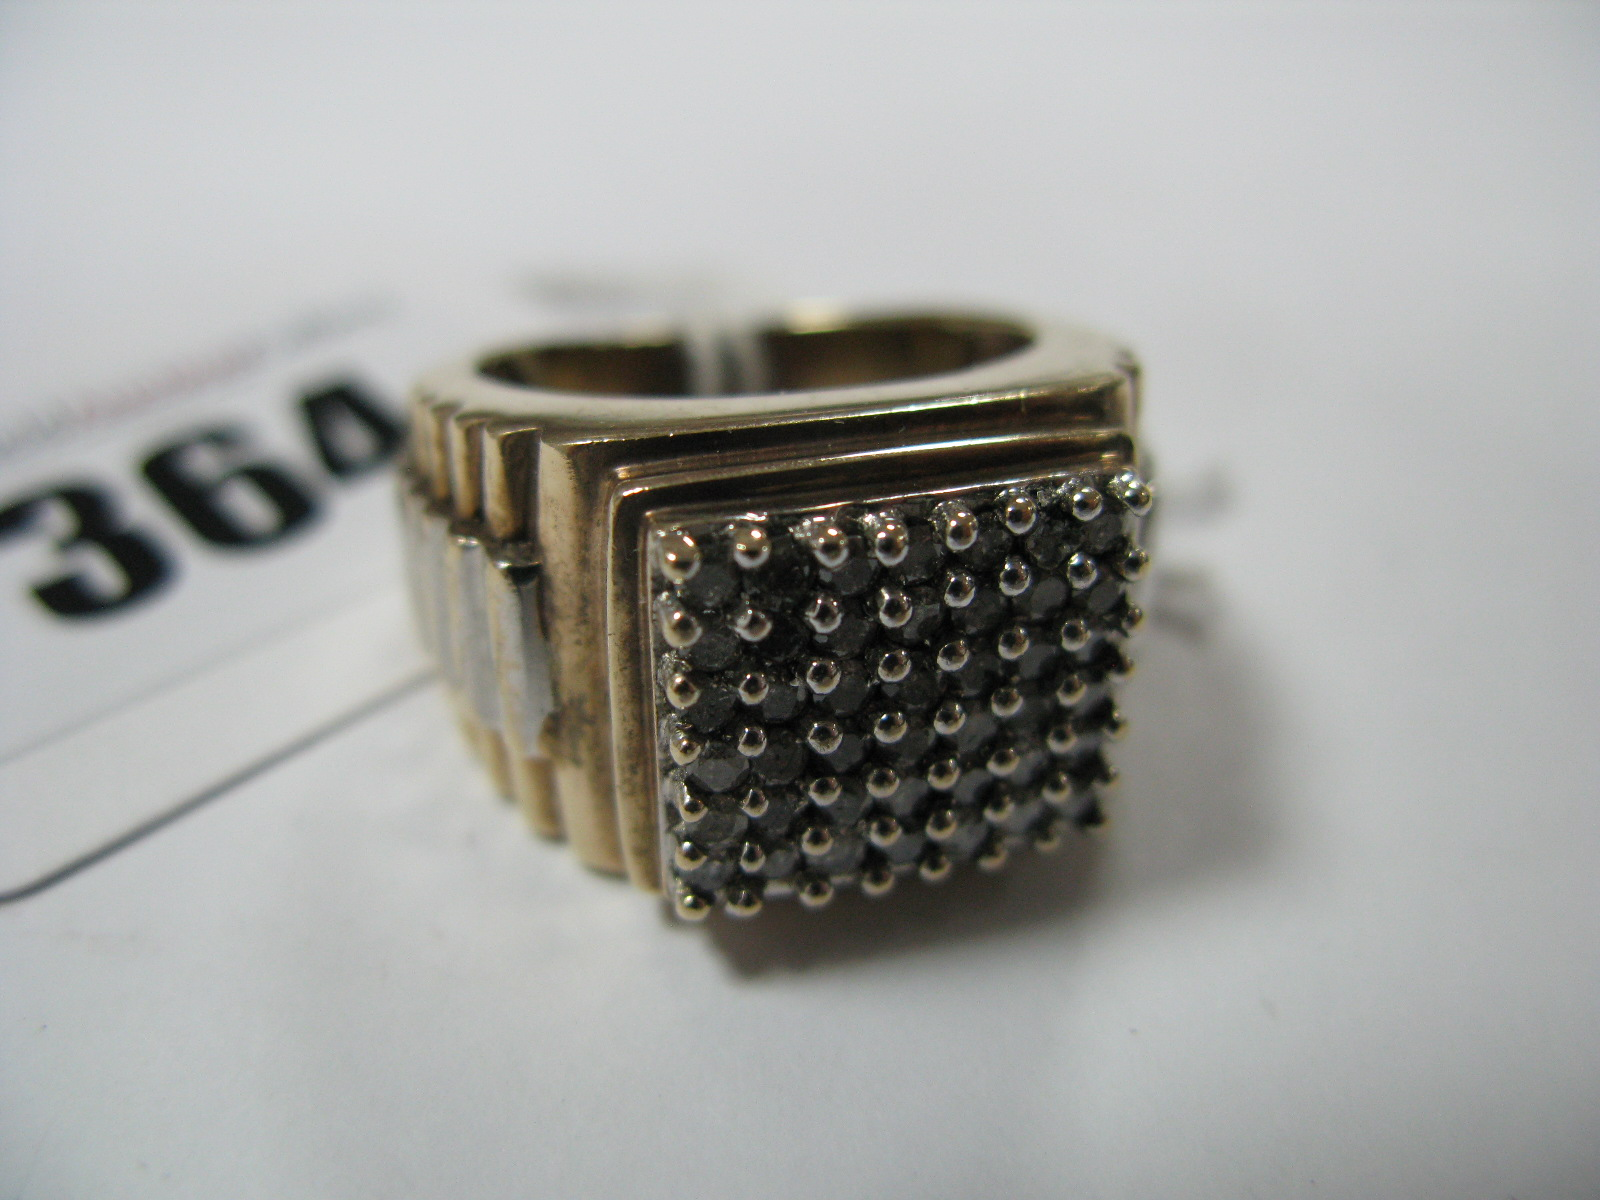 Lot 364 - A Large Gent's Dress Ring, square claw set to the centre, between textured watch bracelet style